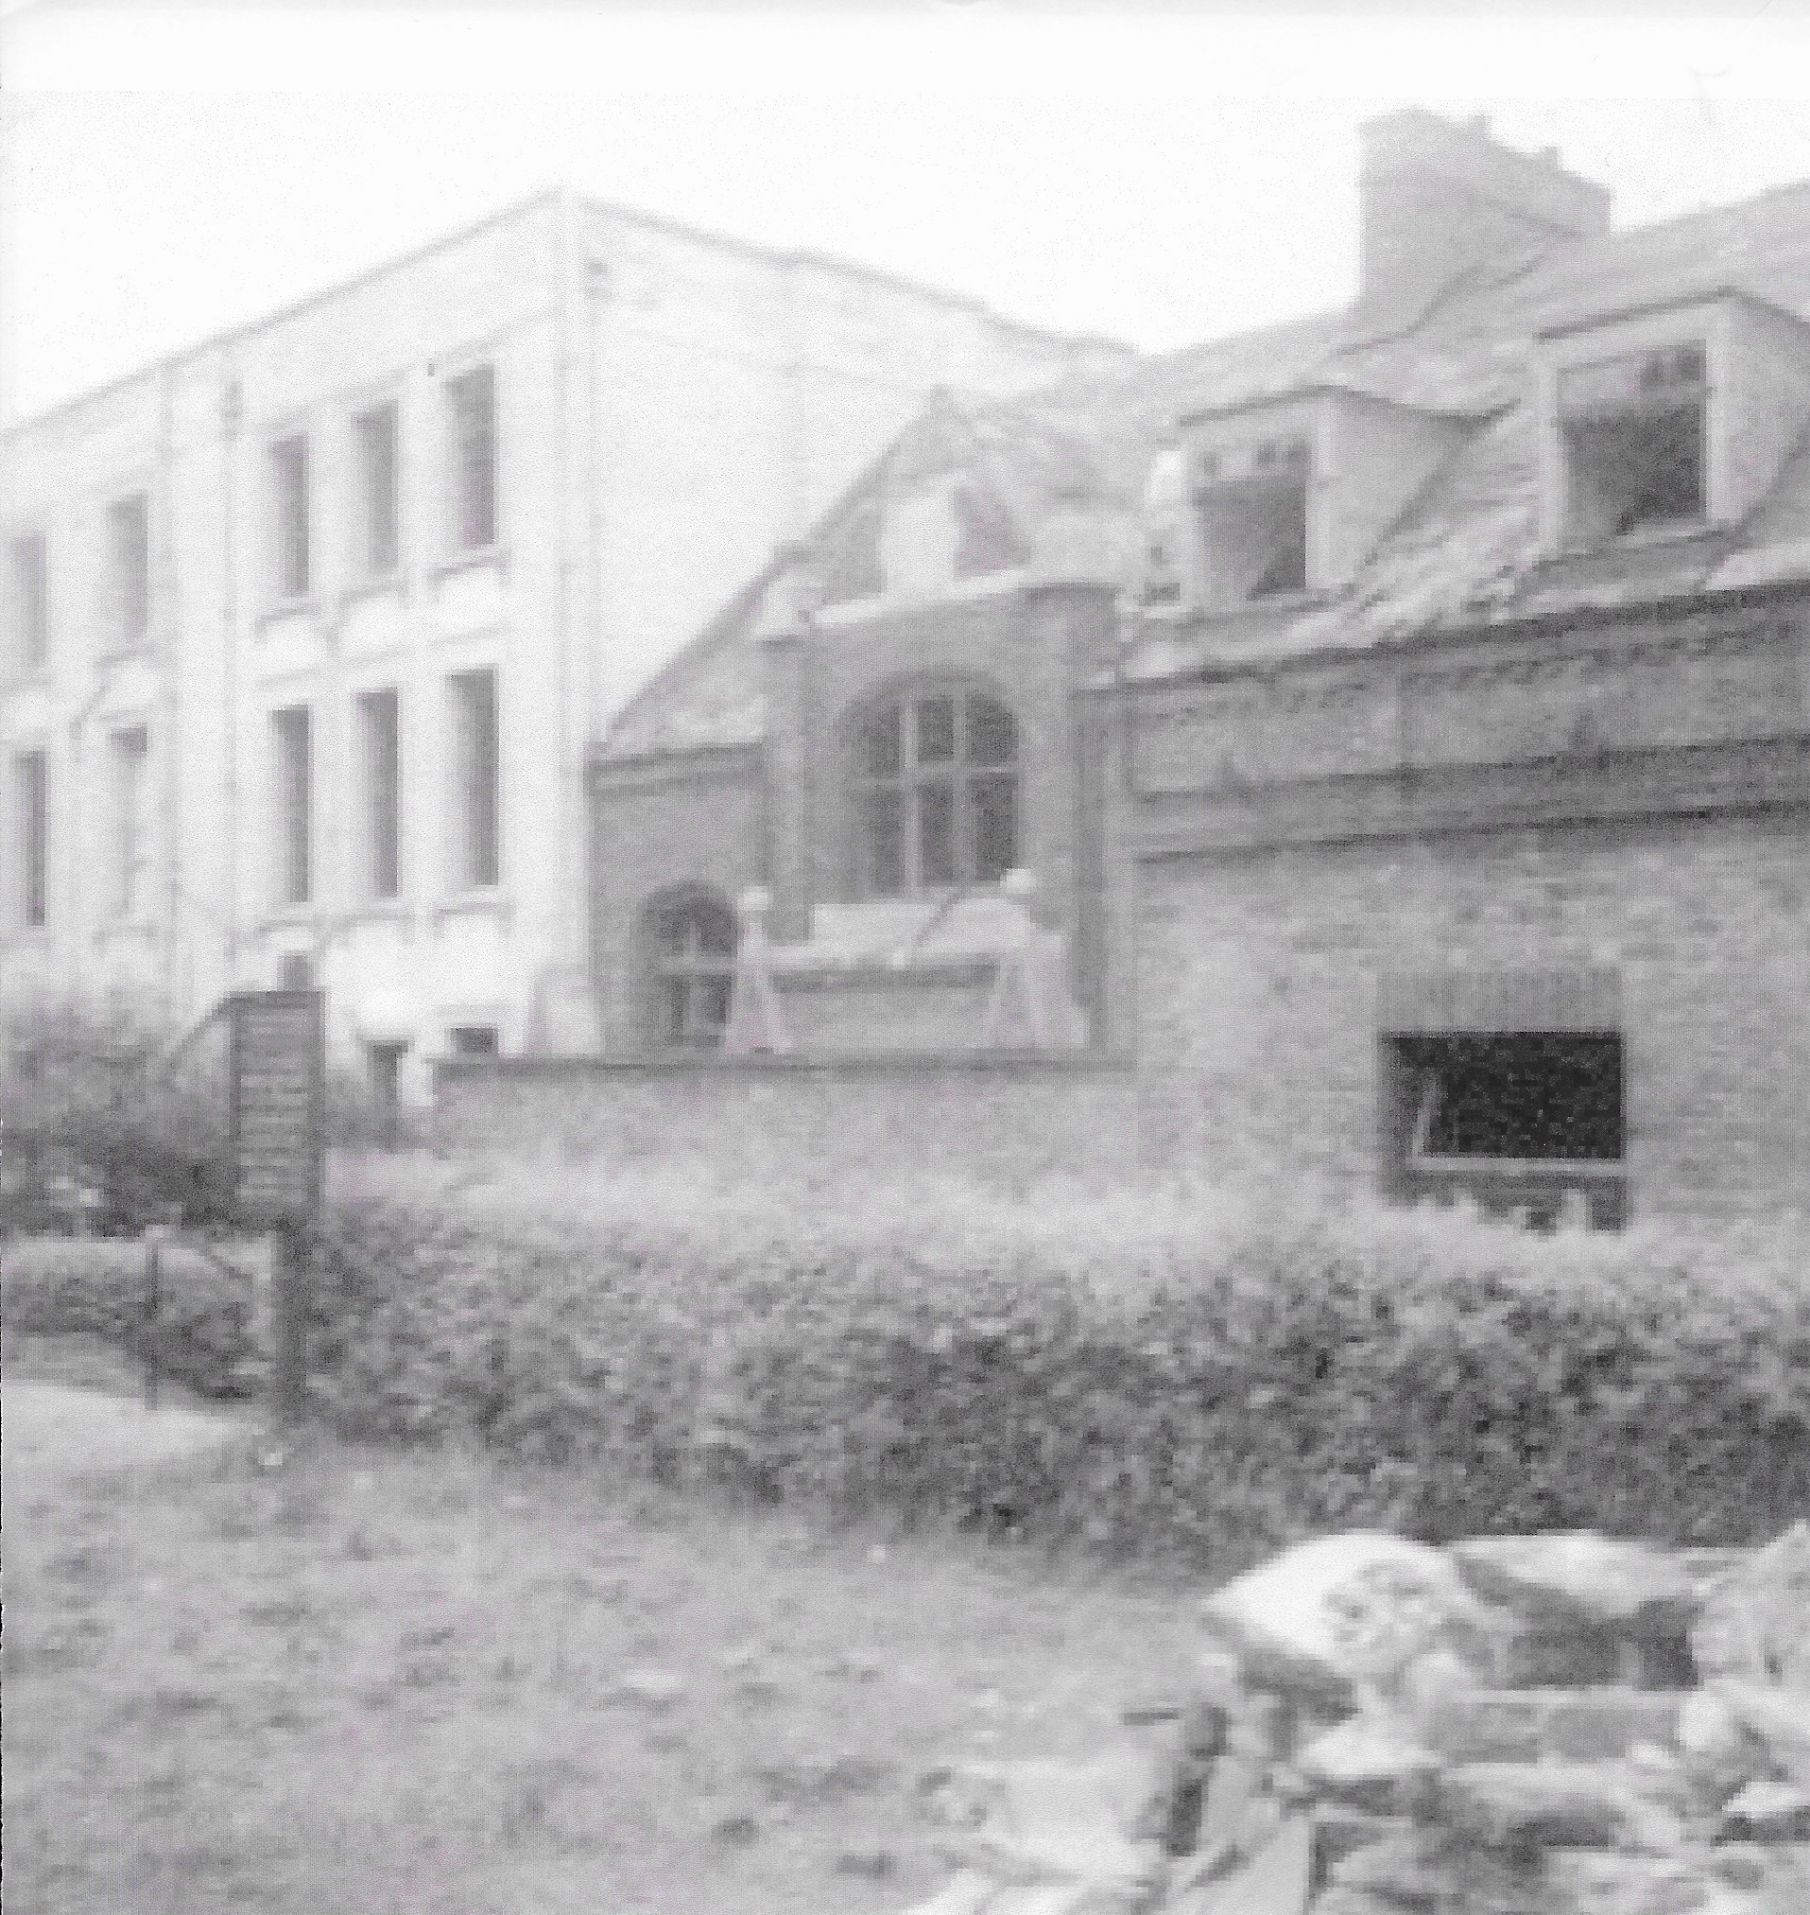 39 Honor Oak Road damaged by a bomb in 1944